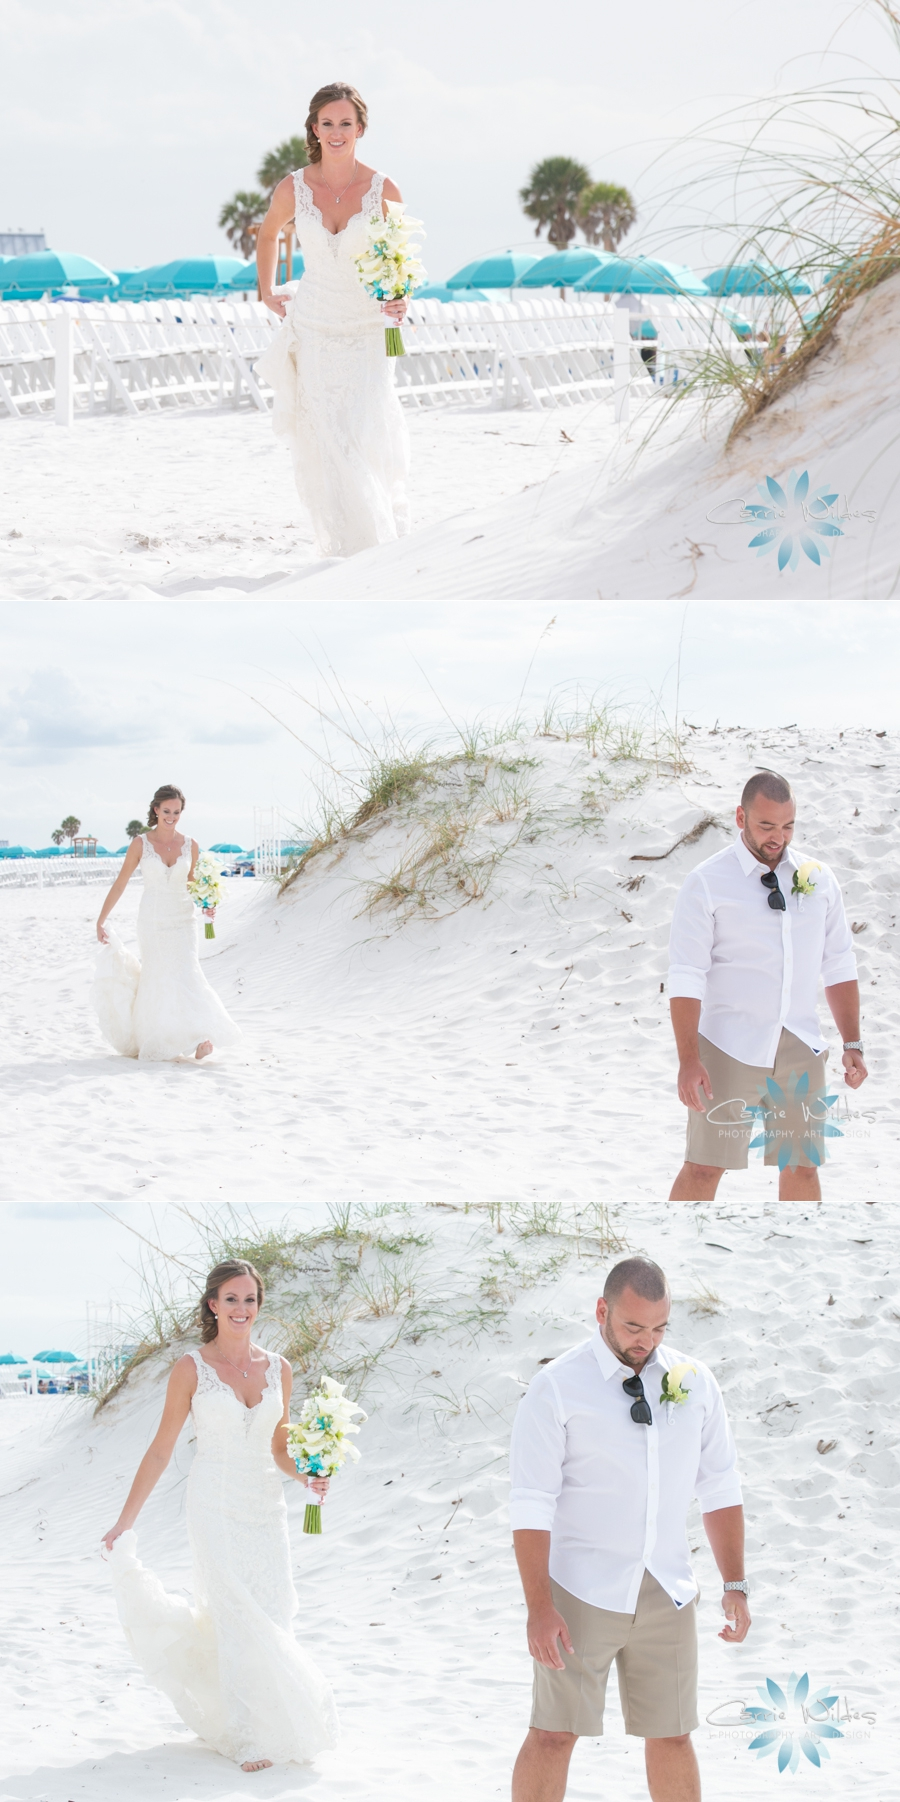 10_21_17 Melissa and Mike Hilton Clearwater Beach Wedding_0016.jpg